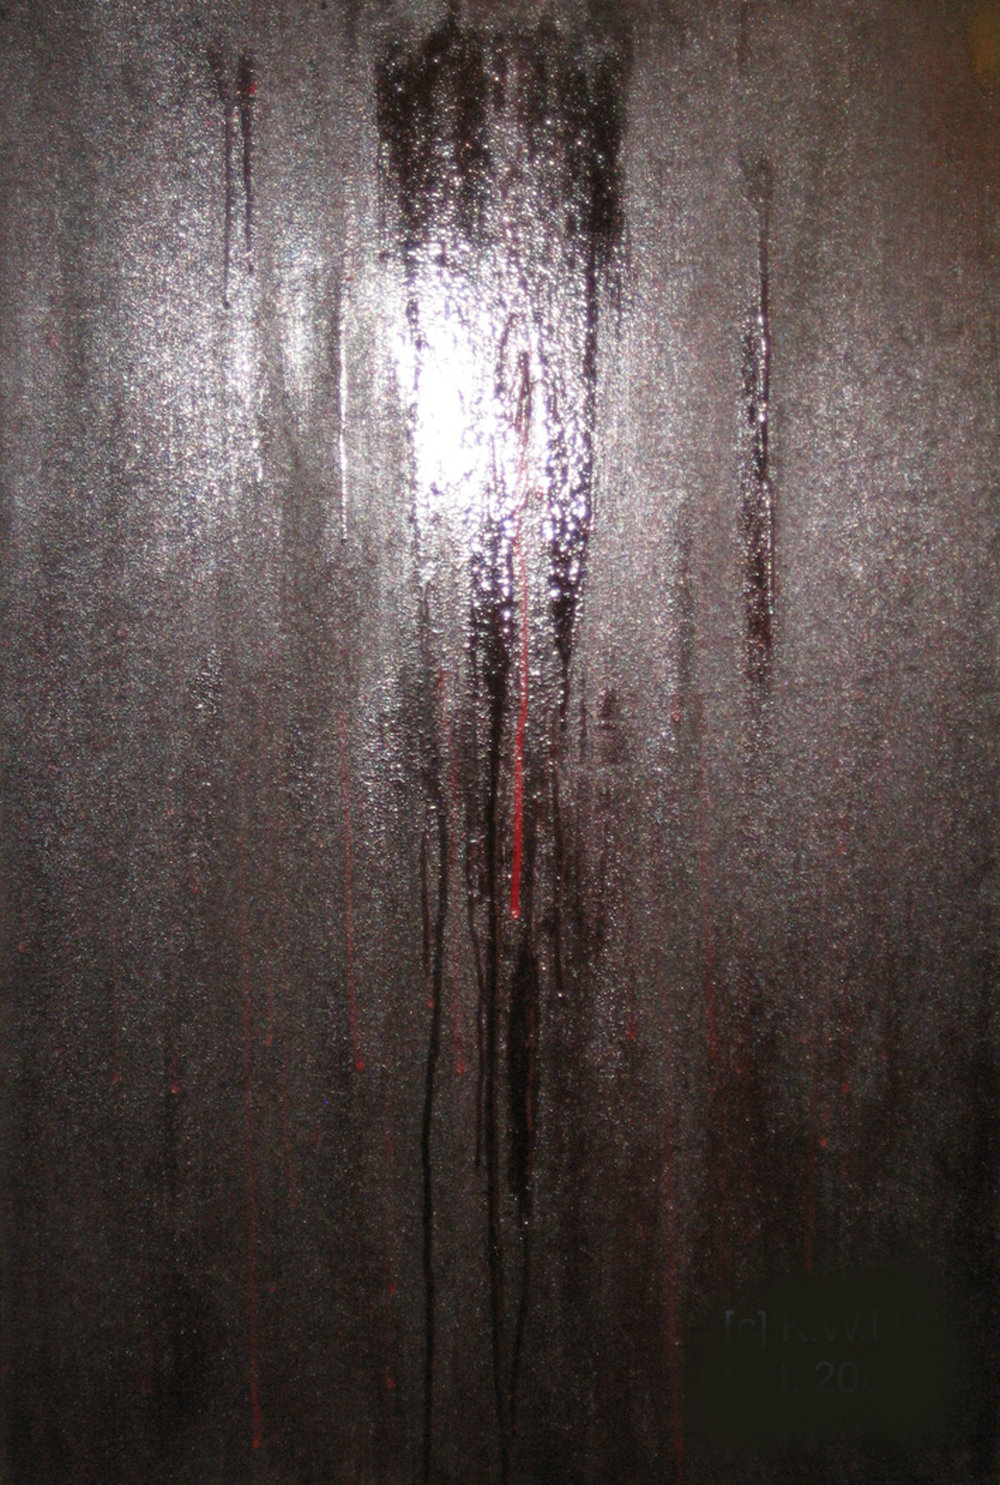 Virgin Y 03-09 (Dripping Fluid Series 2003 – 2009)